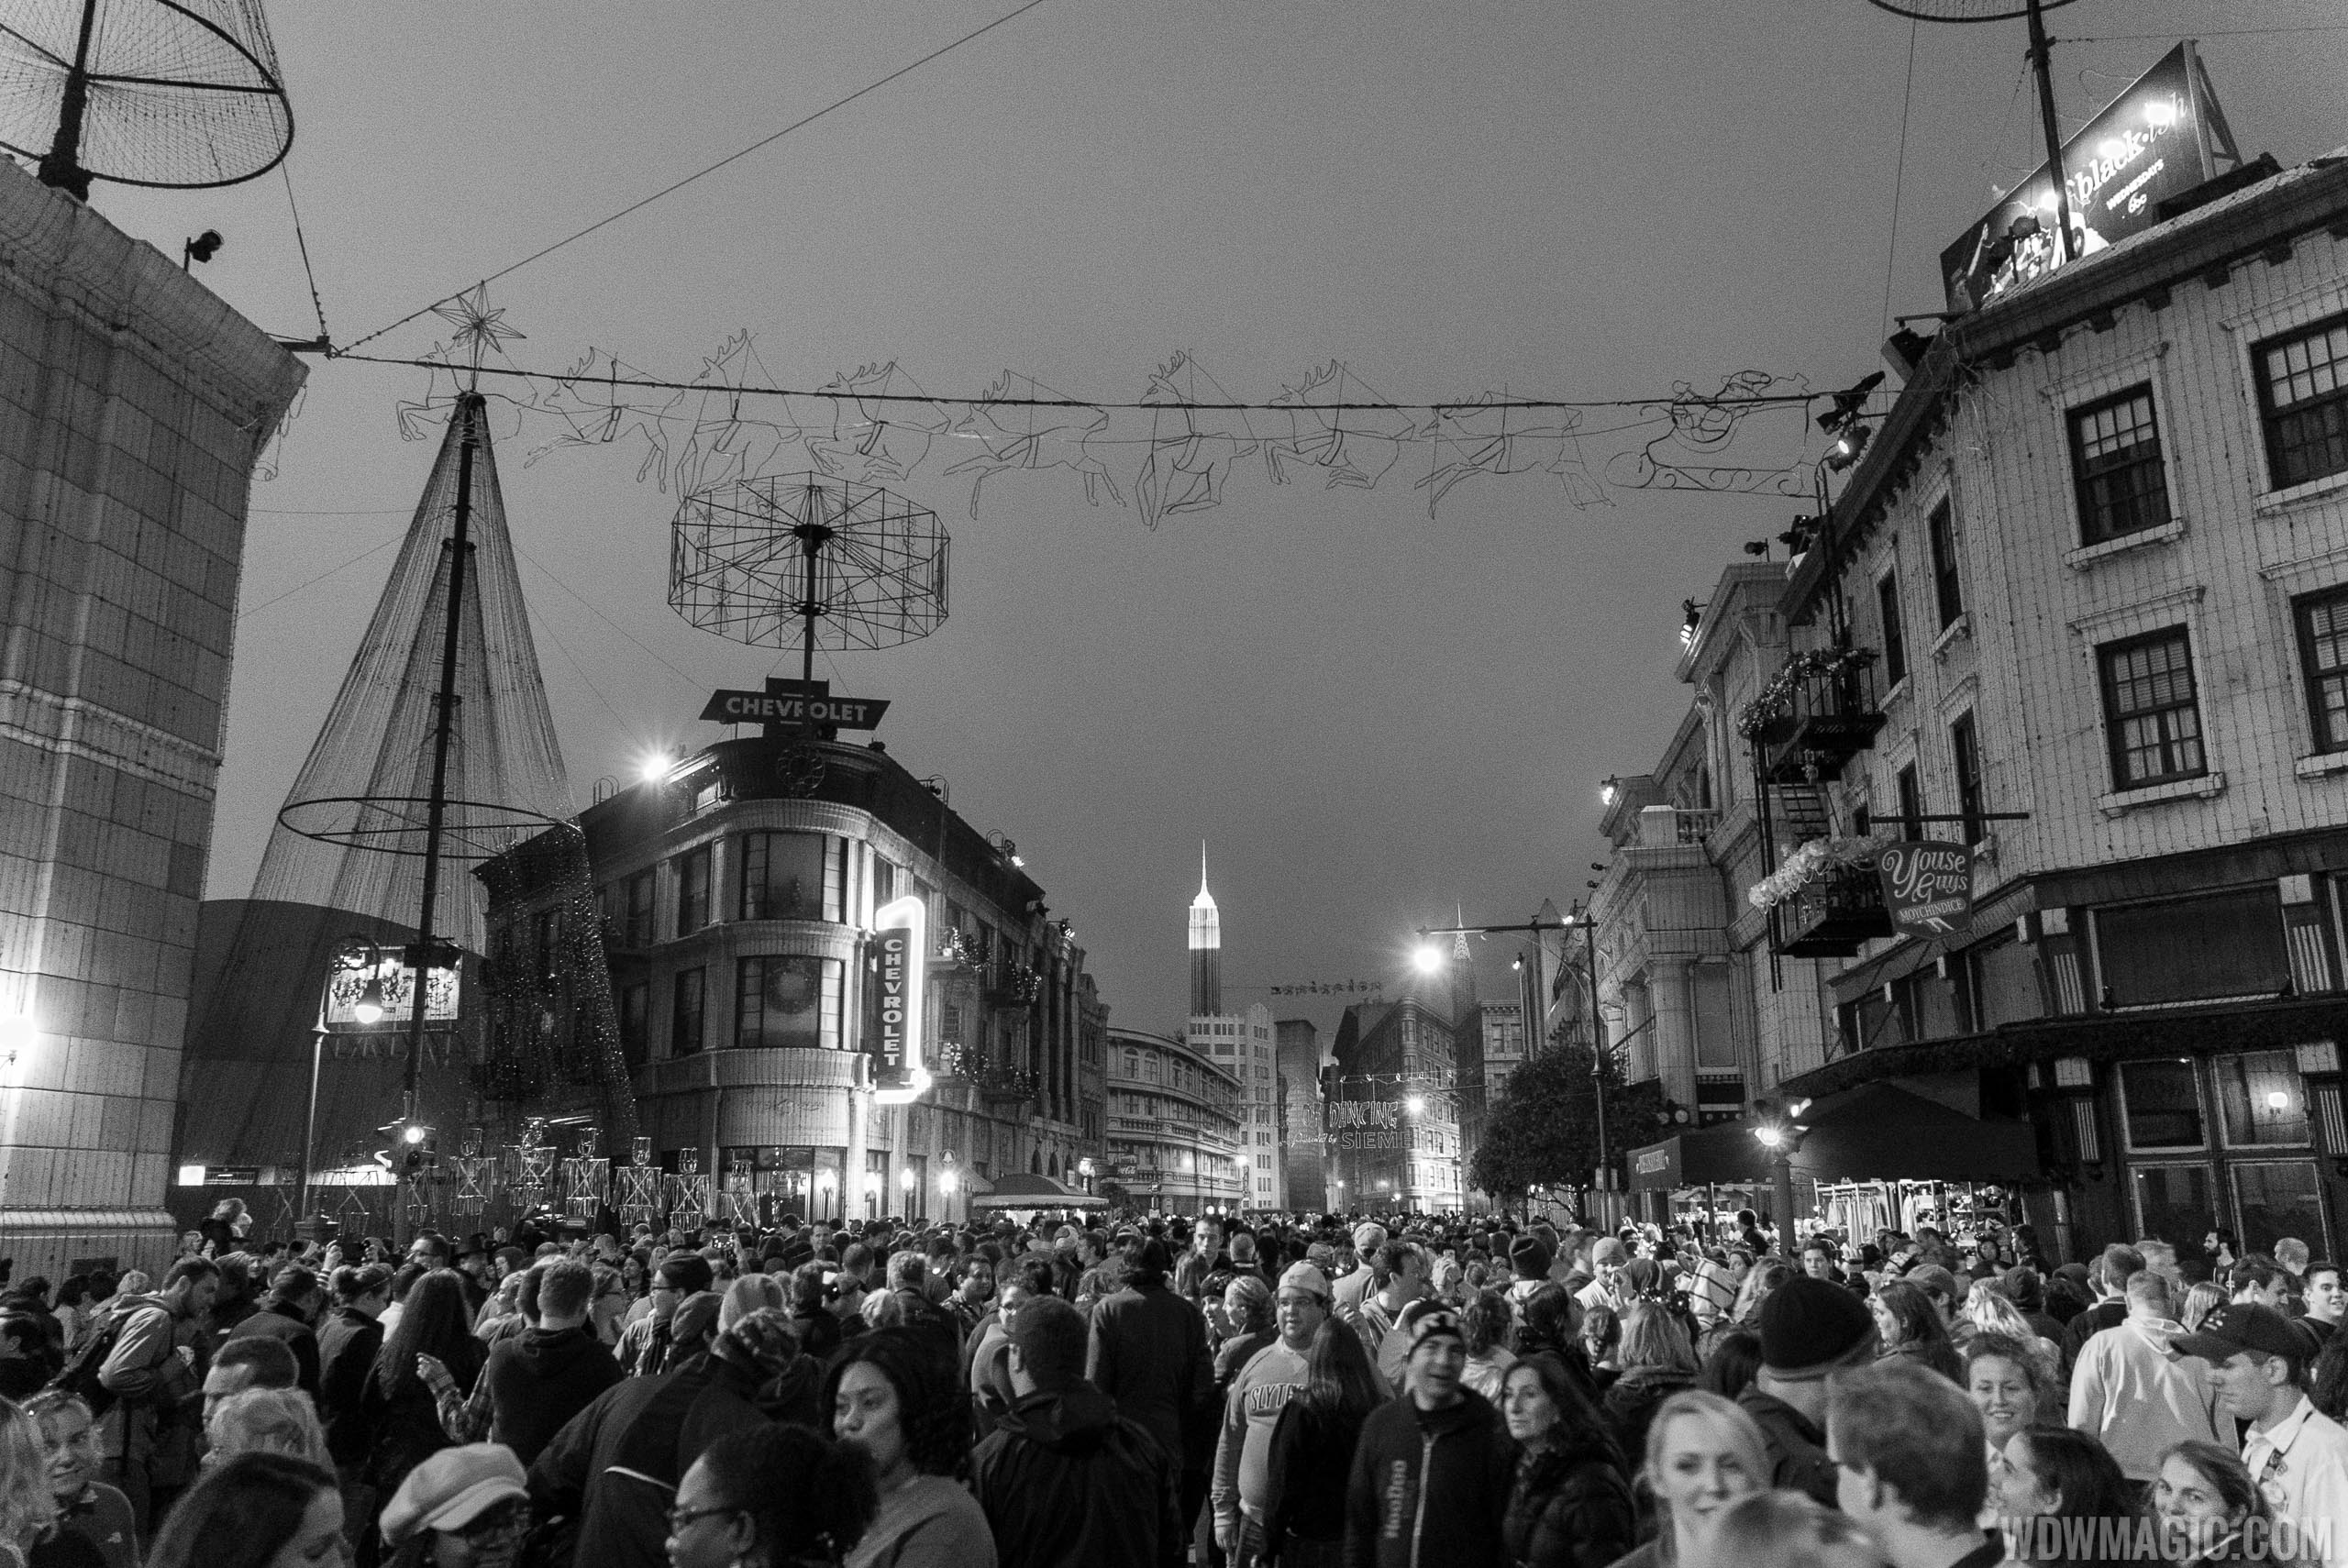 Crowds after the lights turn off for the final time